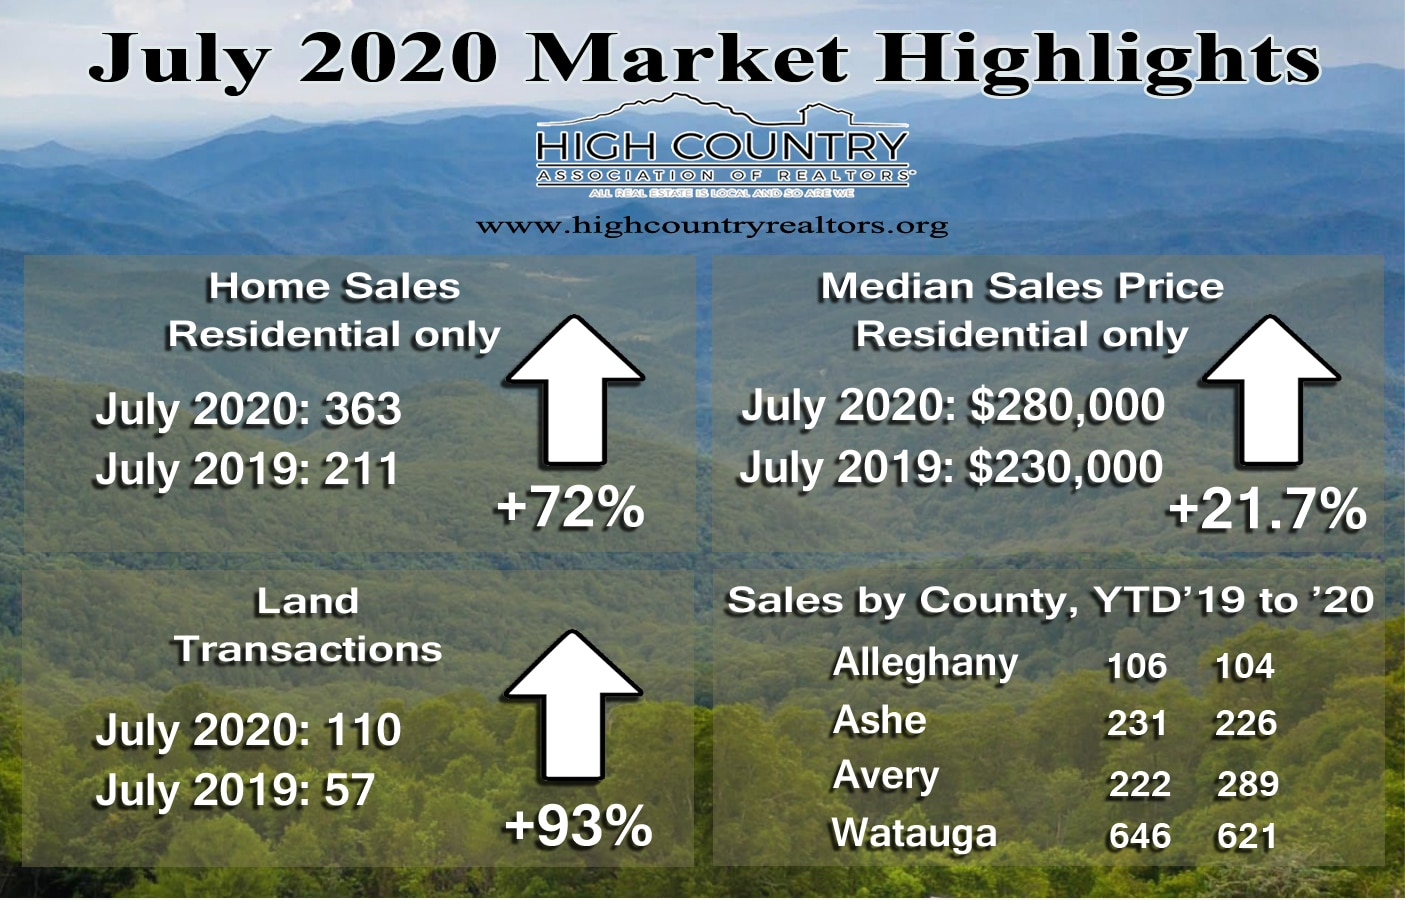 Real estate activity hits record highs in July